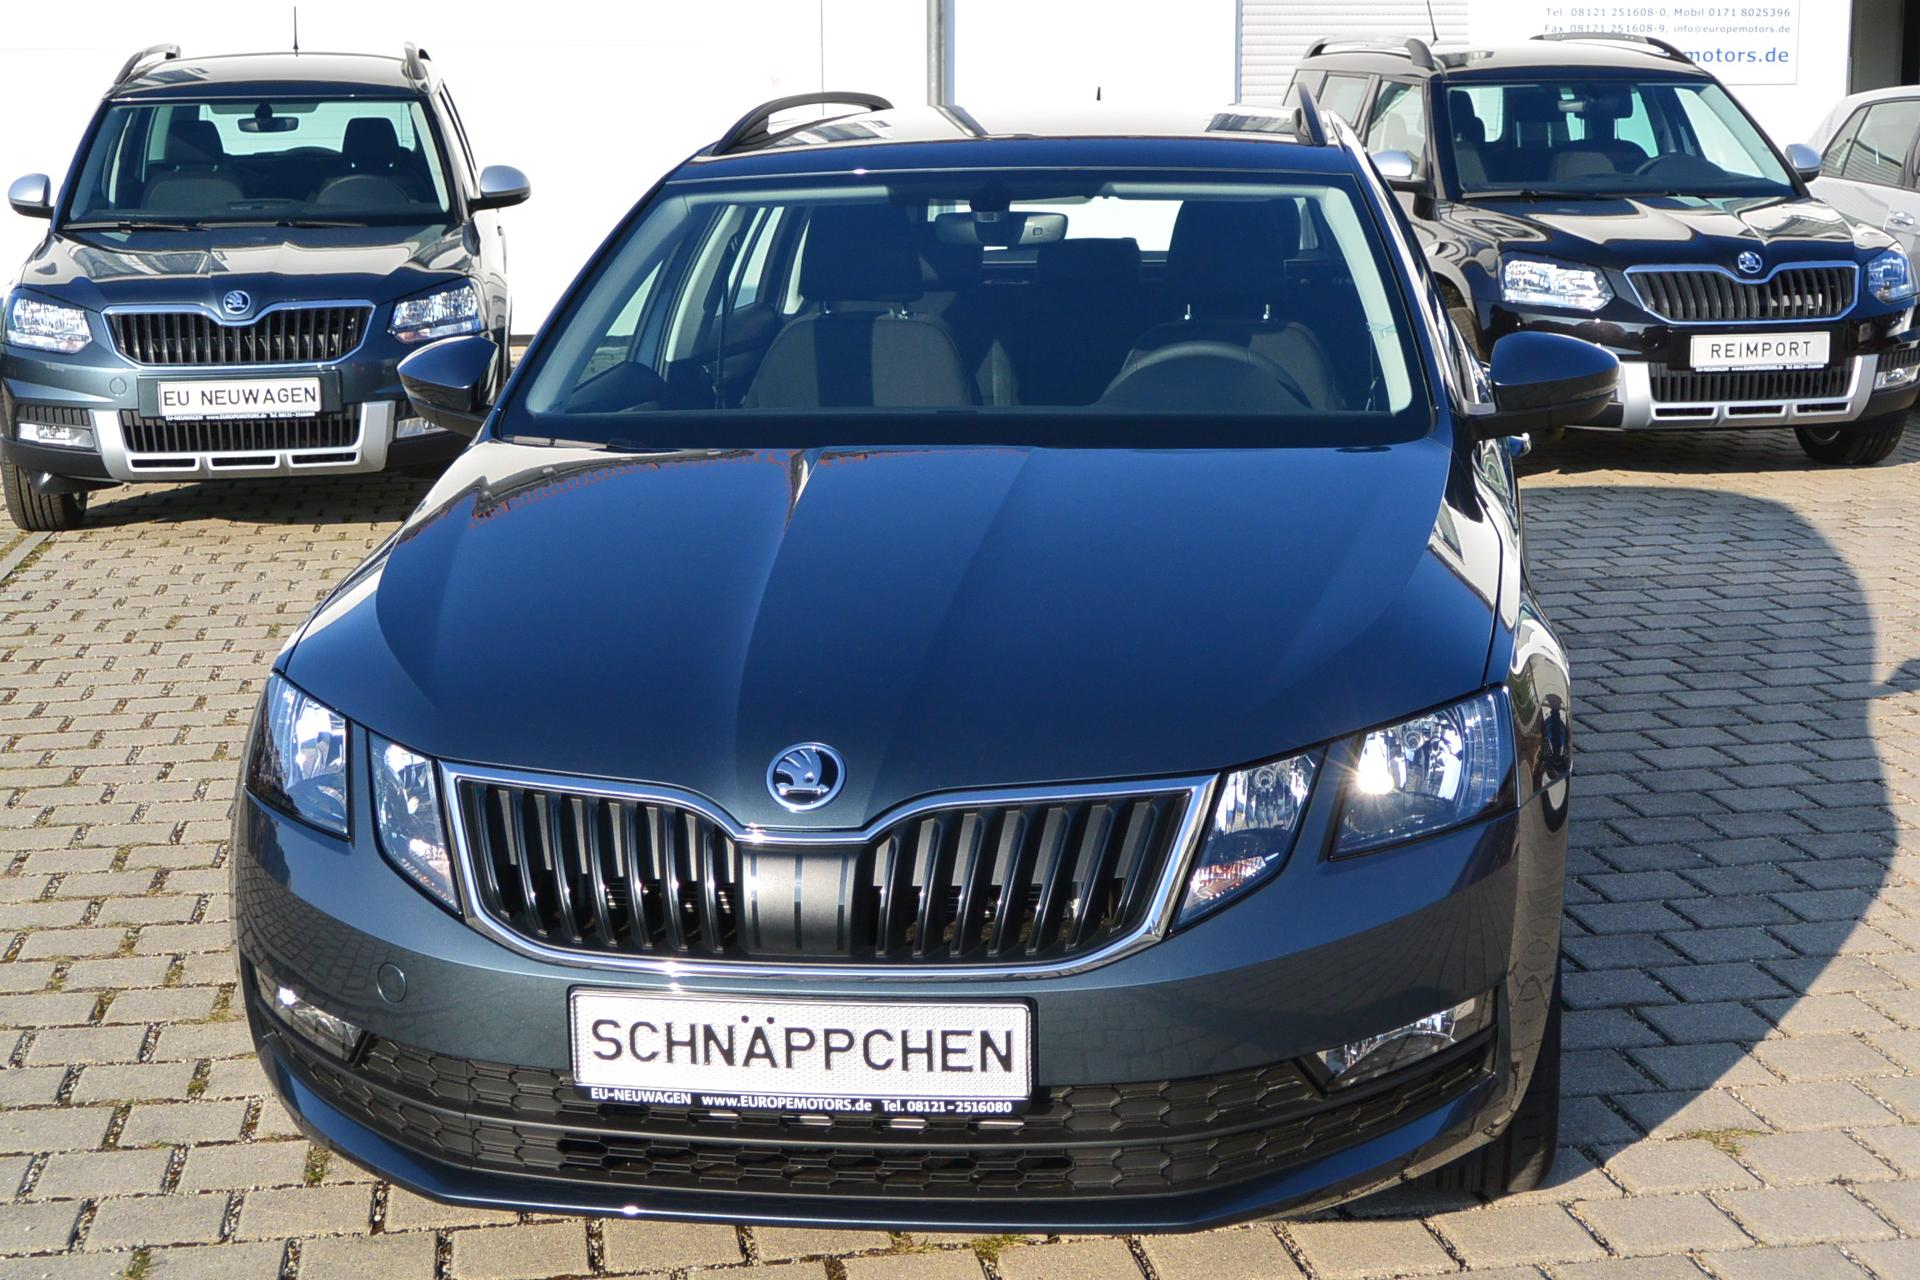 skoda octavia combi ambition 1 6 tdi scr 4x4 85 kw 115 ps allrad reimport eu neuwagen zum. Black Bedroom Furniture Sets. Home Design Ideas